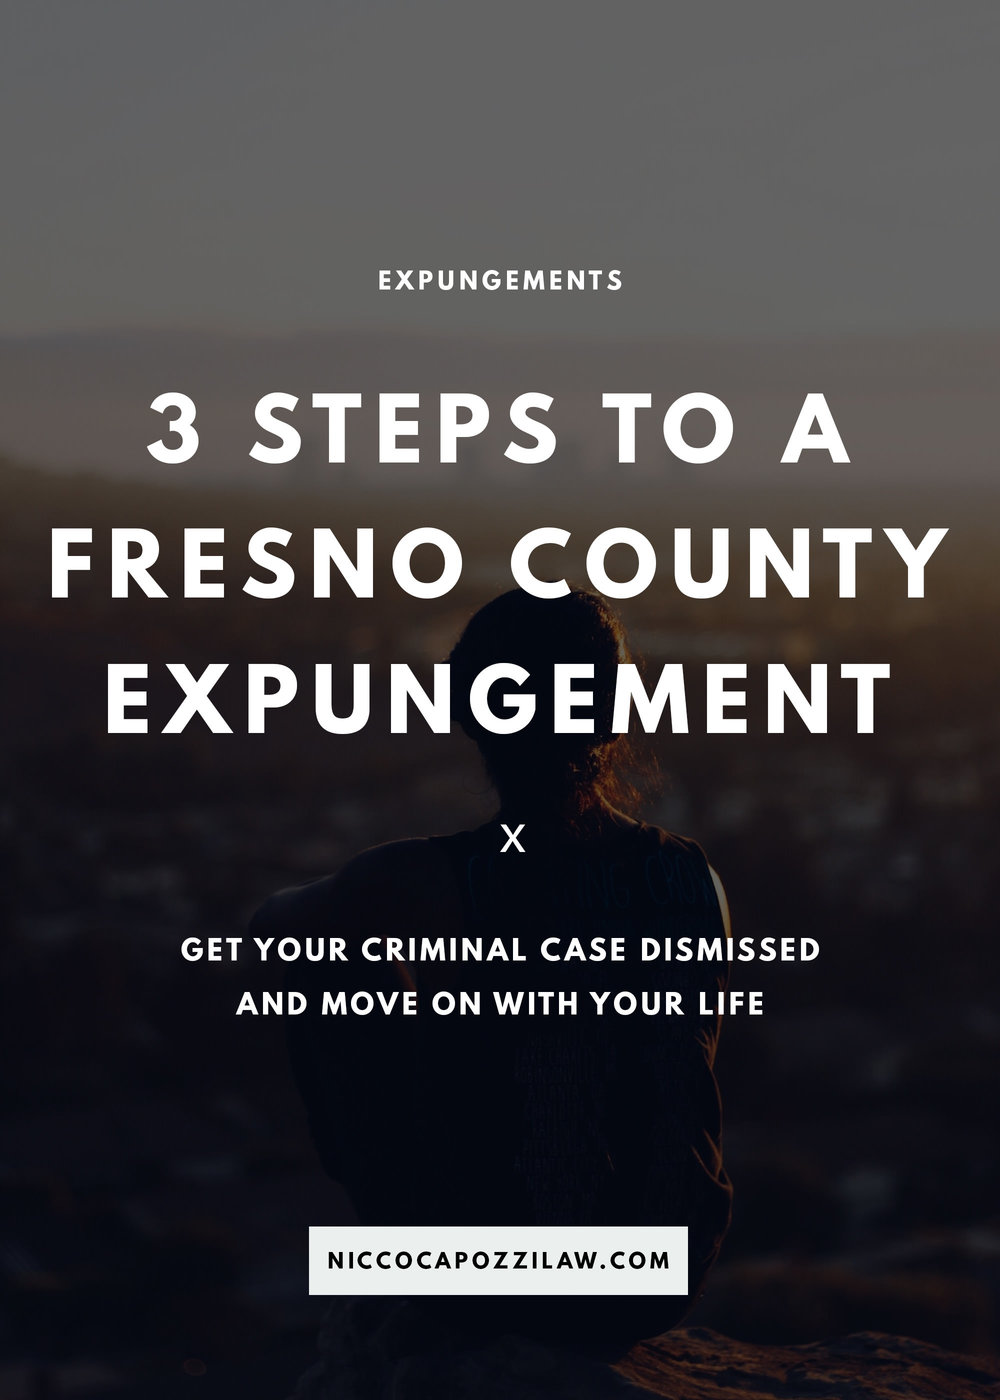 3 Steps To A Fresno County Expungement